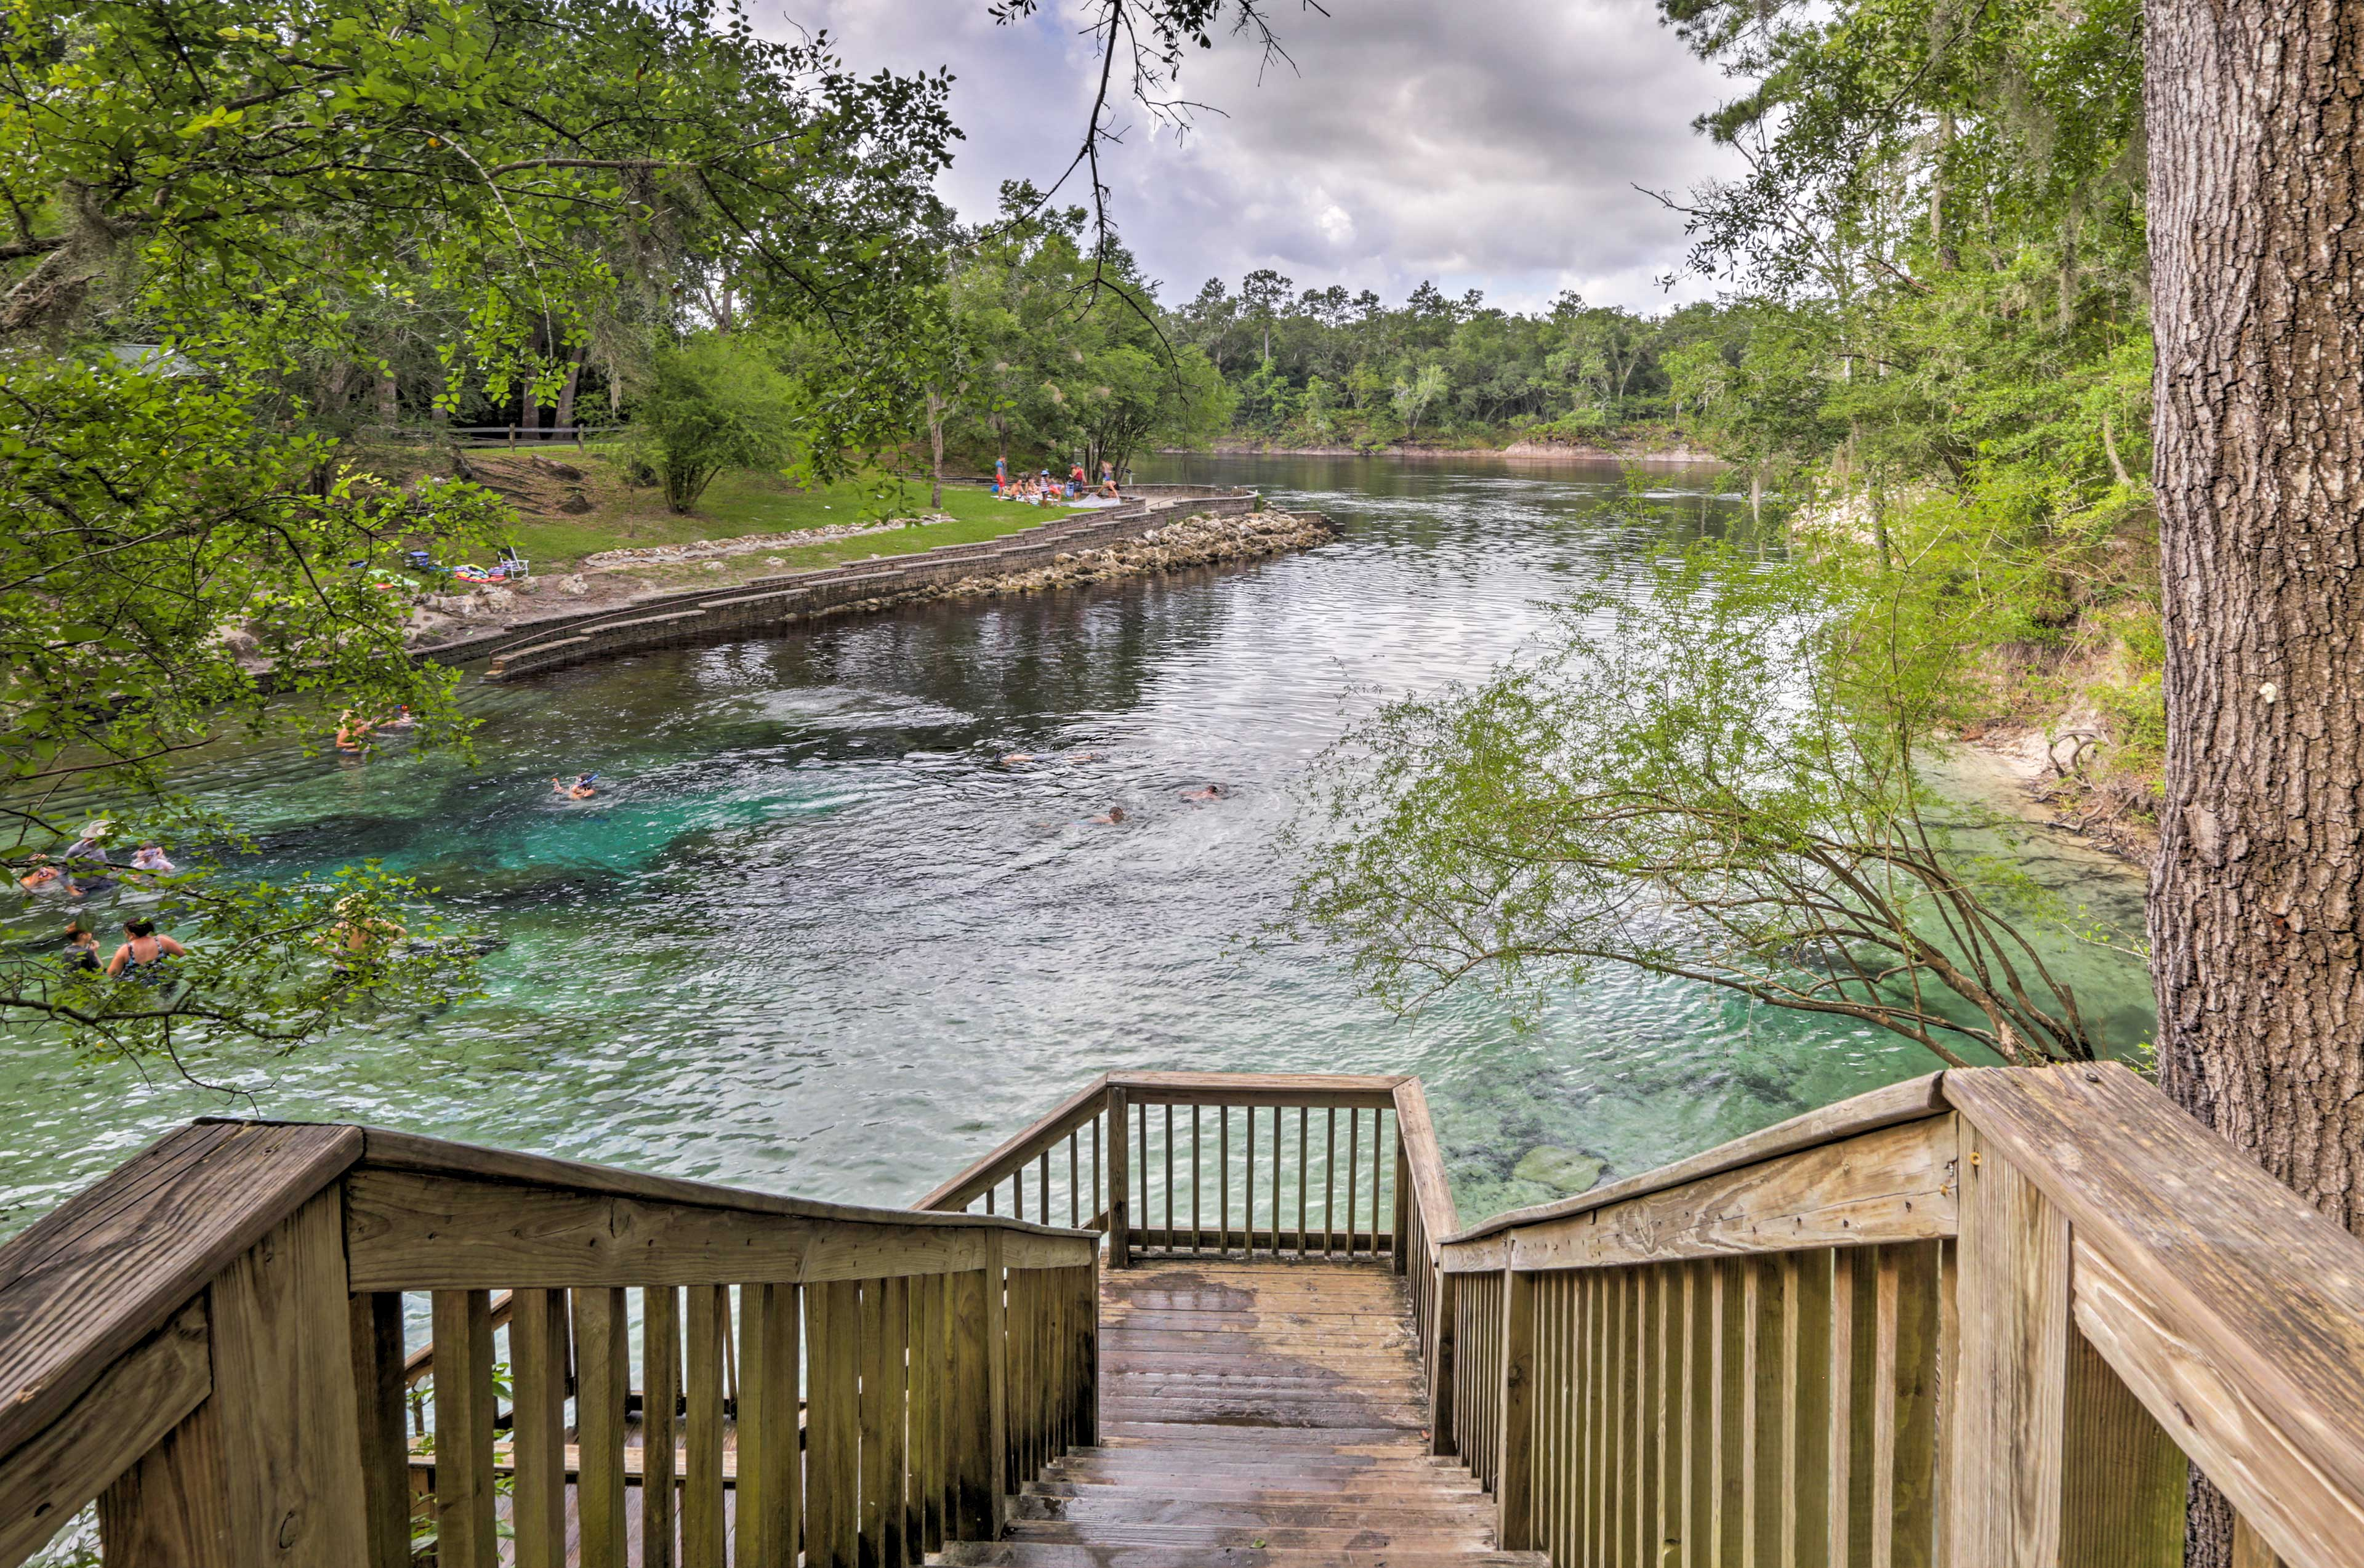 Head over for some cave diving at the natural springs.